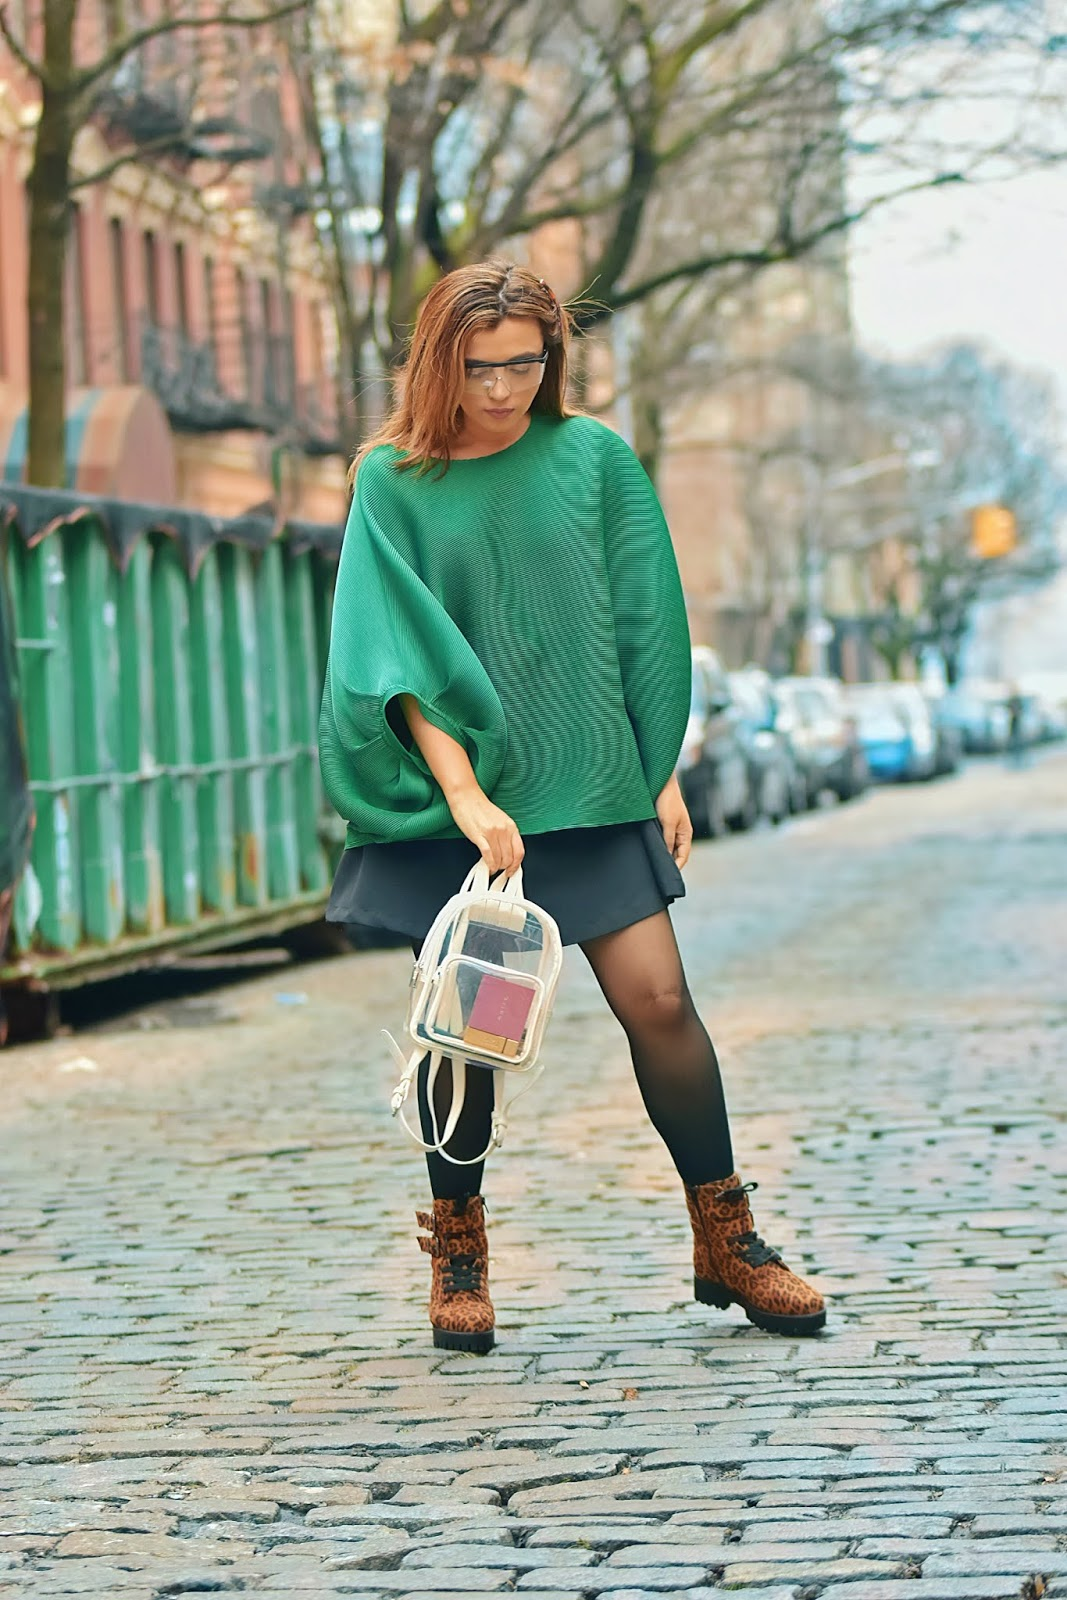 NYFW -INDONESIAN DIVERSITY - DAY 1-fashionblogger-lookoftheday-it girl-nyfw streetstyle-dcblogger-moda-alta costura-fashion week-fashion month-